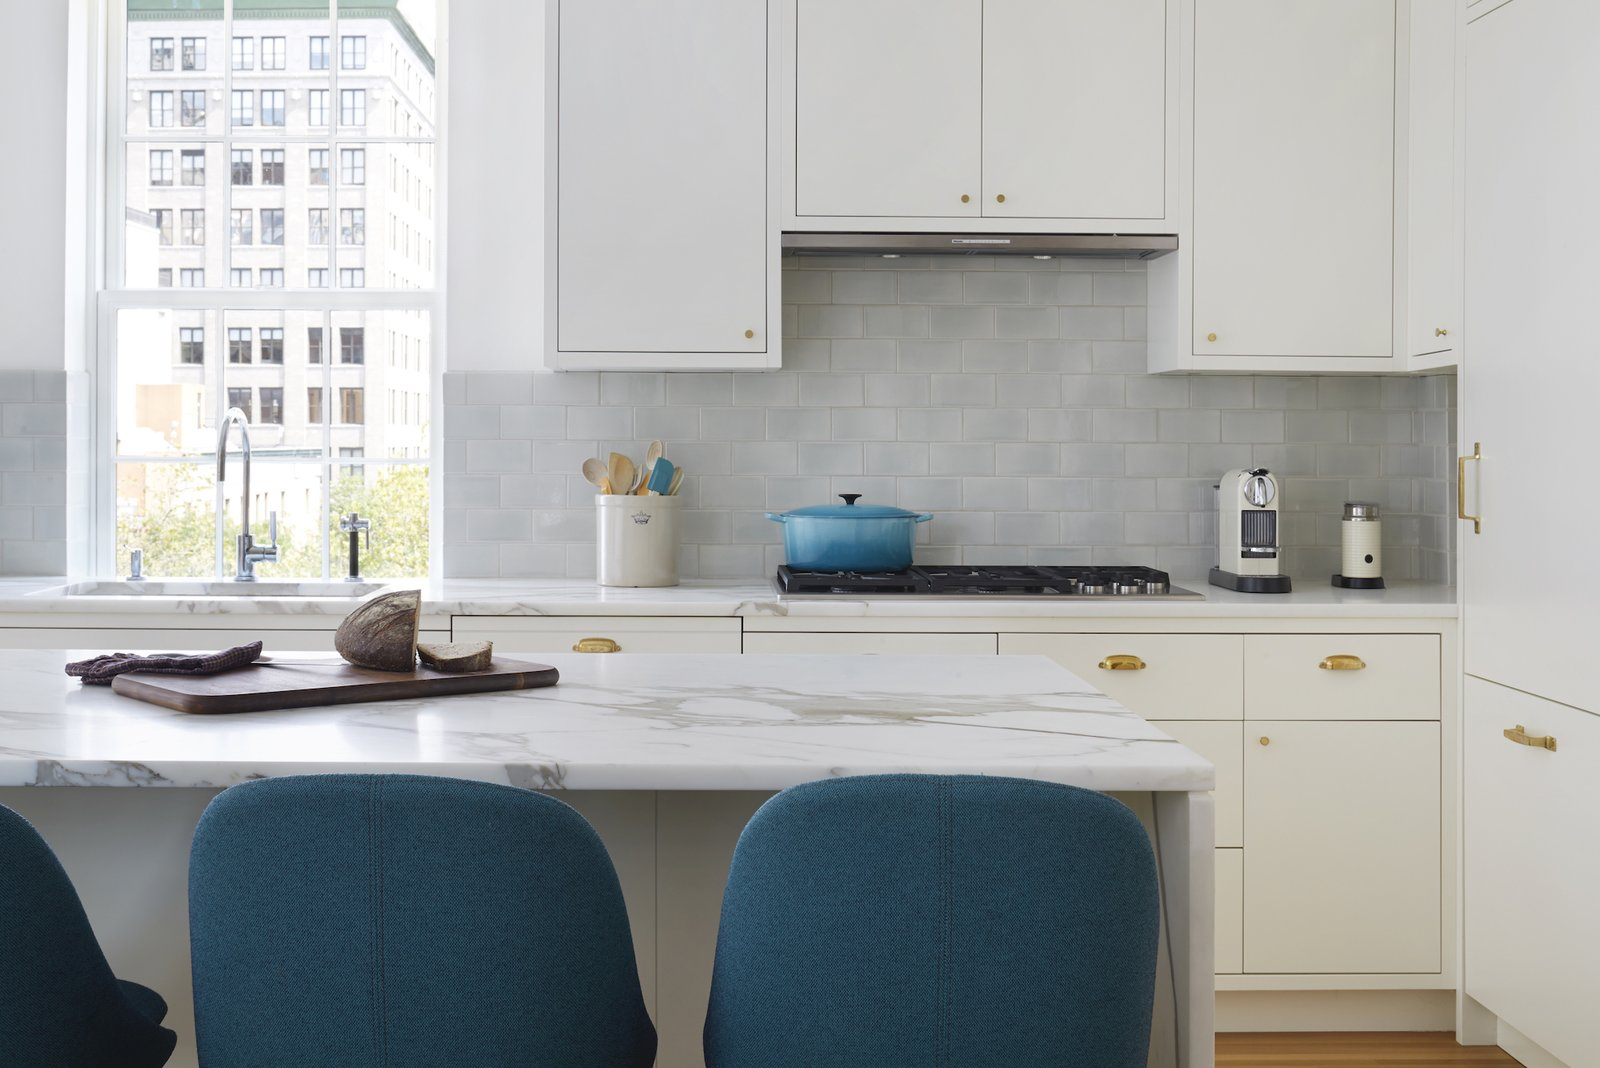 A Dornbracht Tara Classic faucet with separate spray and dispenser competes with the view out to Lower 5th Avenue in this gut renovation by Pulltab Design.  Photo 8 of 11 in How Much Should You Spend on a Kitchen Faucet?